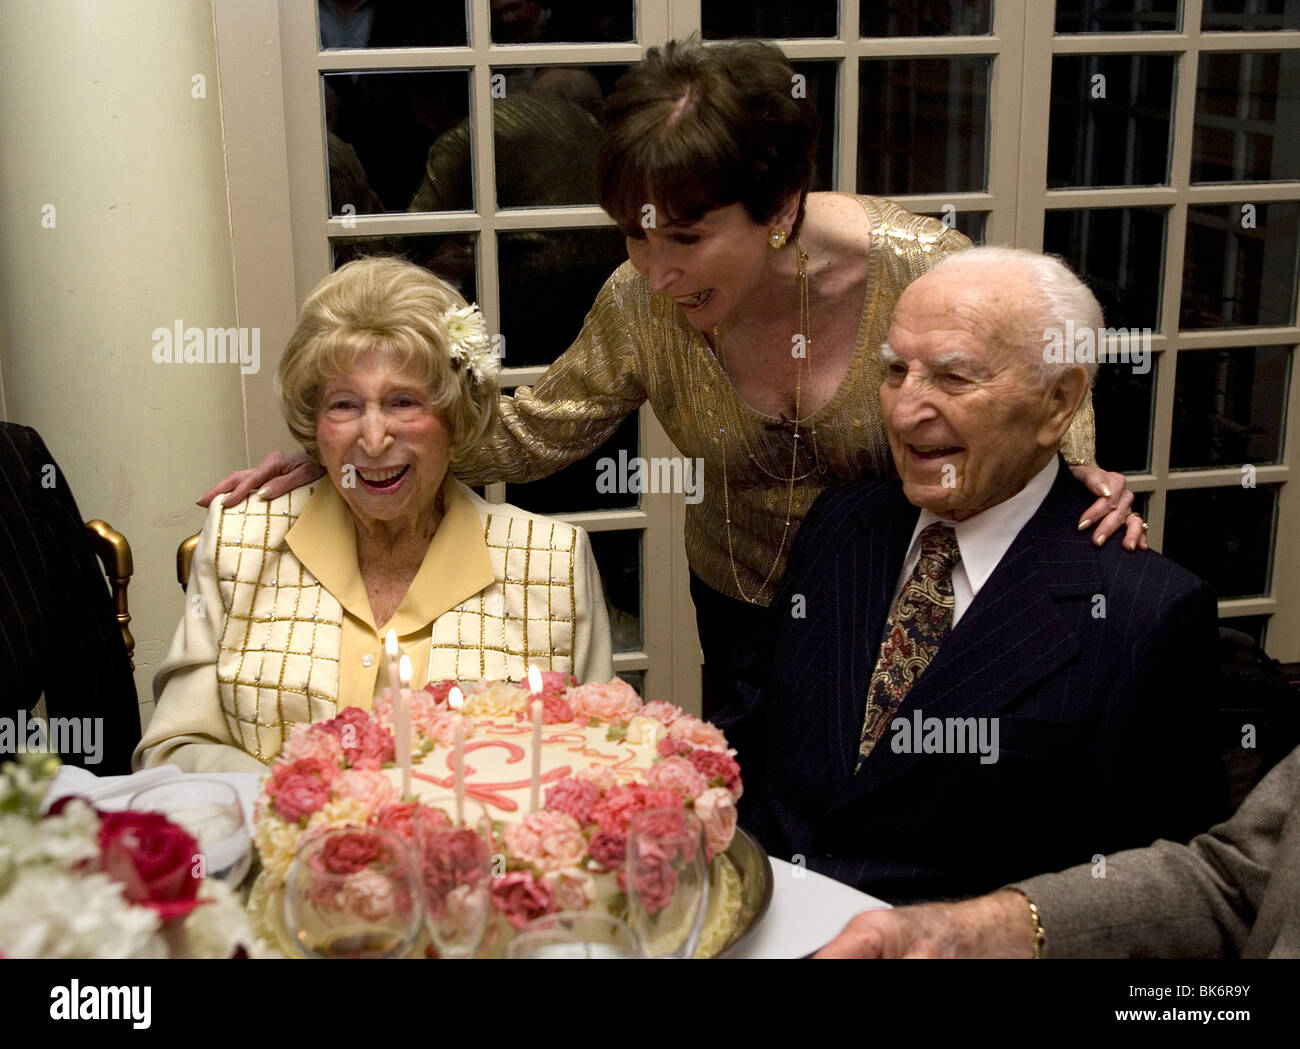 Married couple both in their late nineties celebrate their 75th wedding anniversary. - Stock Image